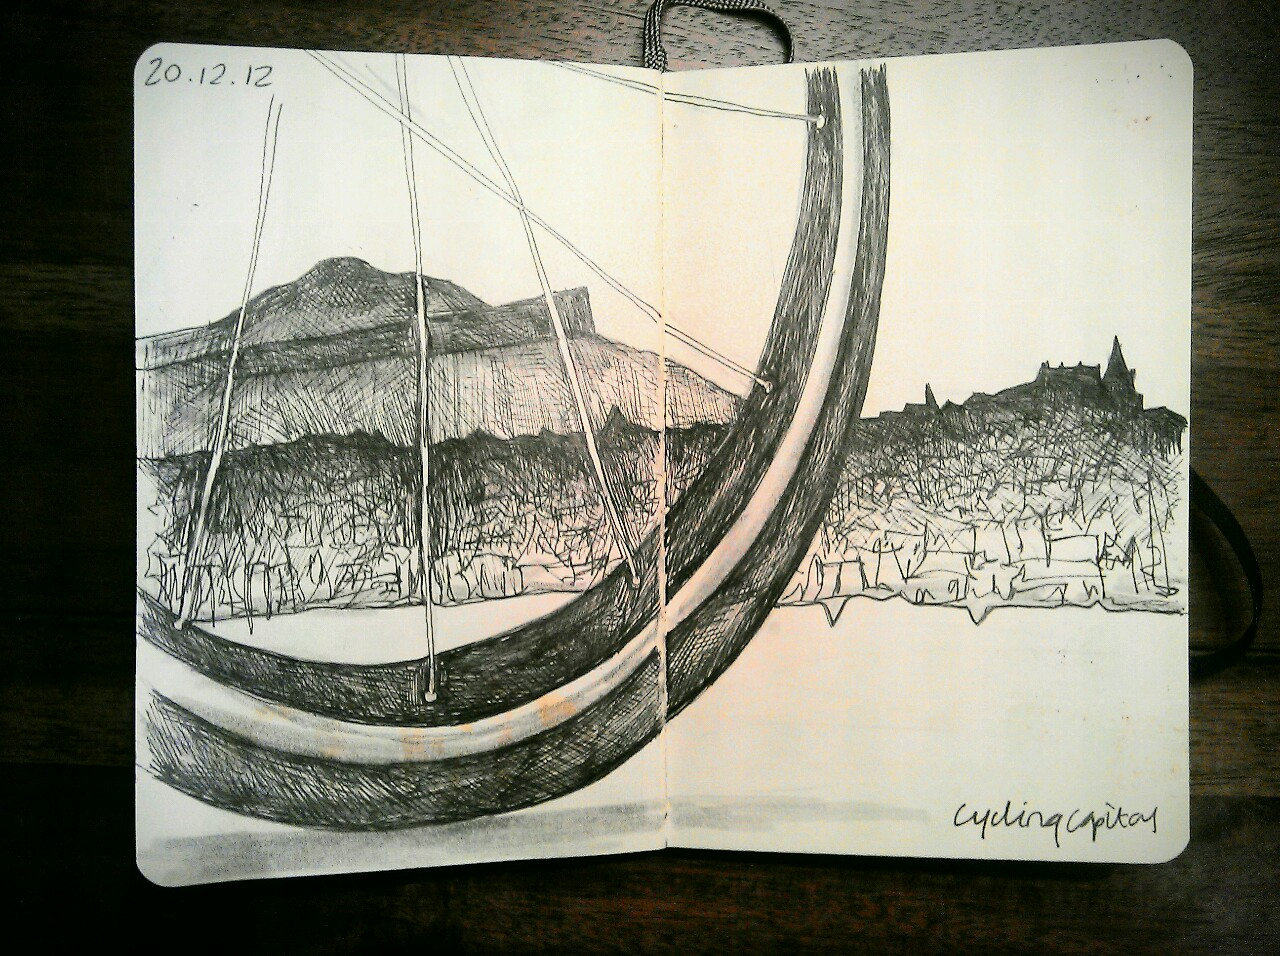 365 drawings later … day 324 … cycling capital